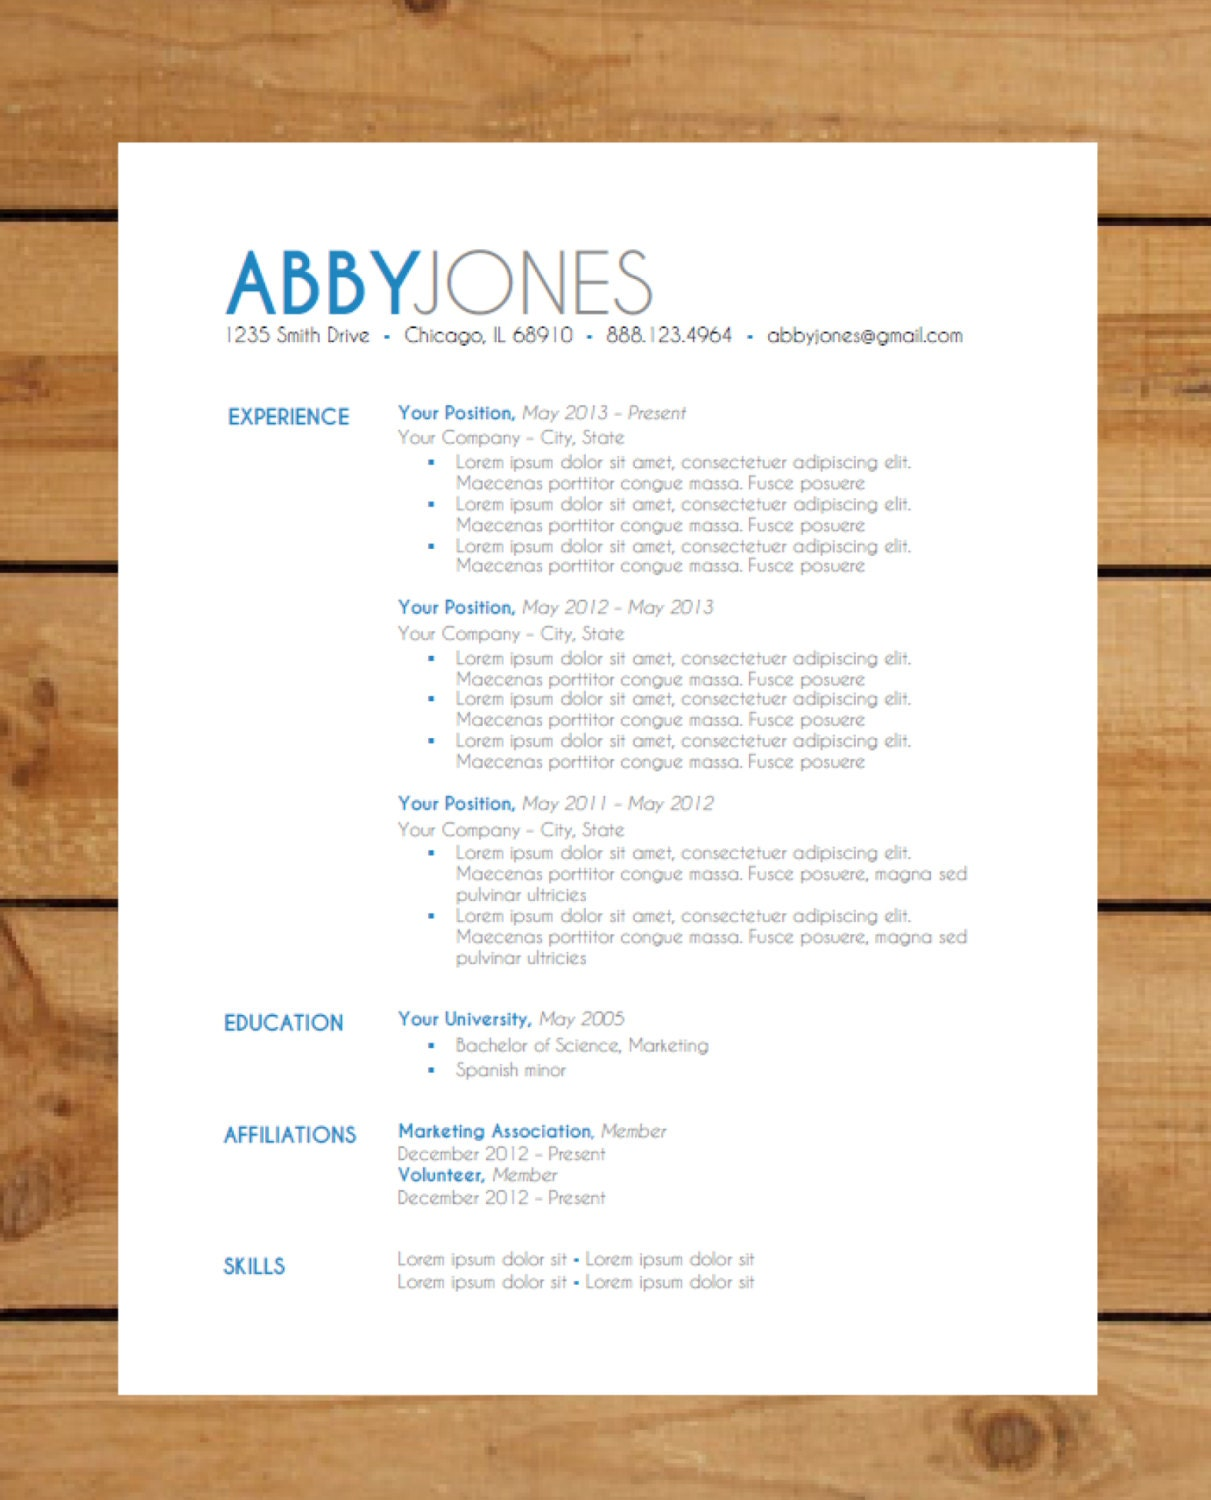 Example resume layout